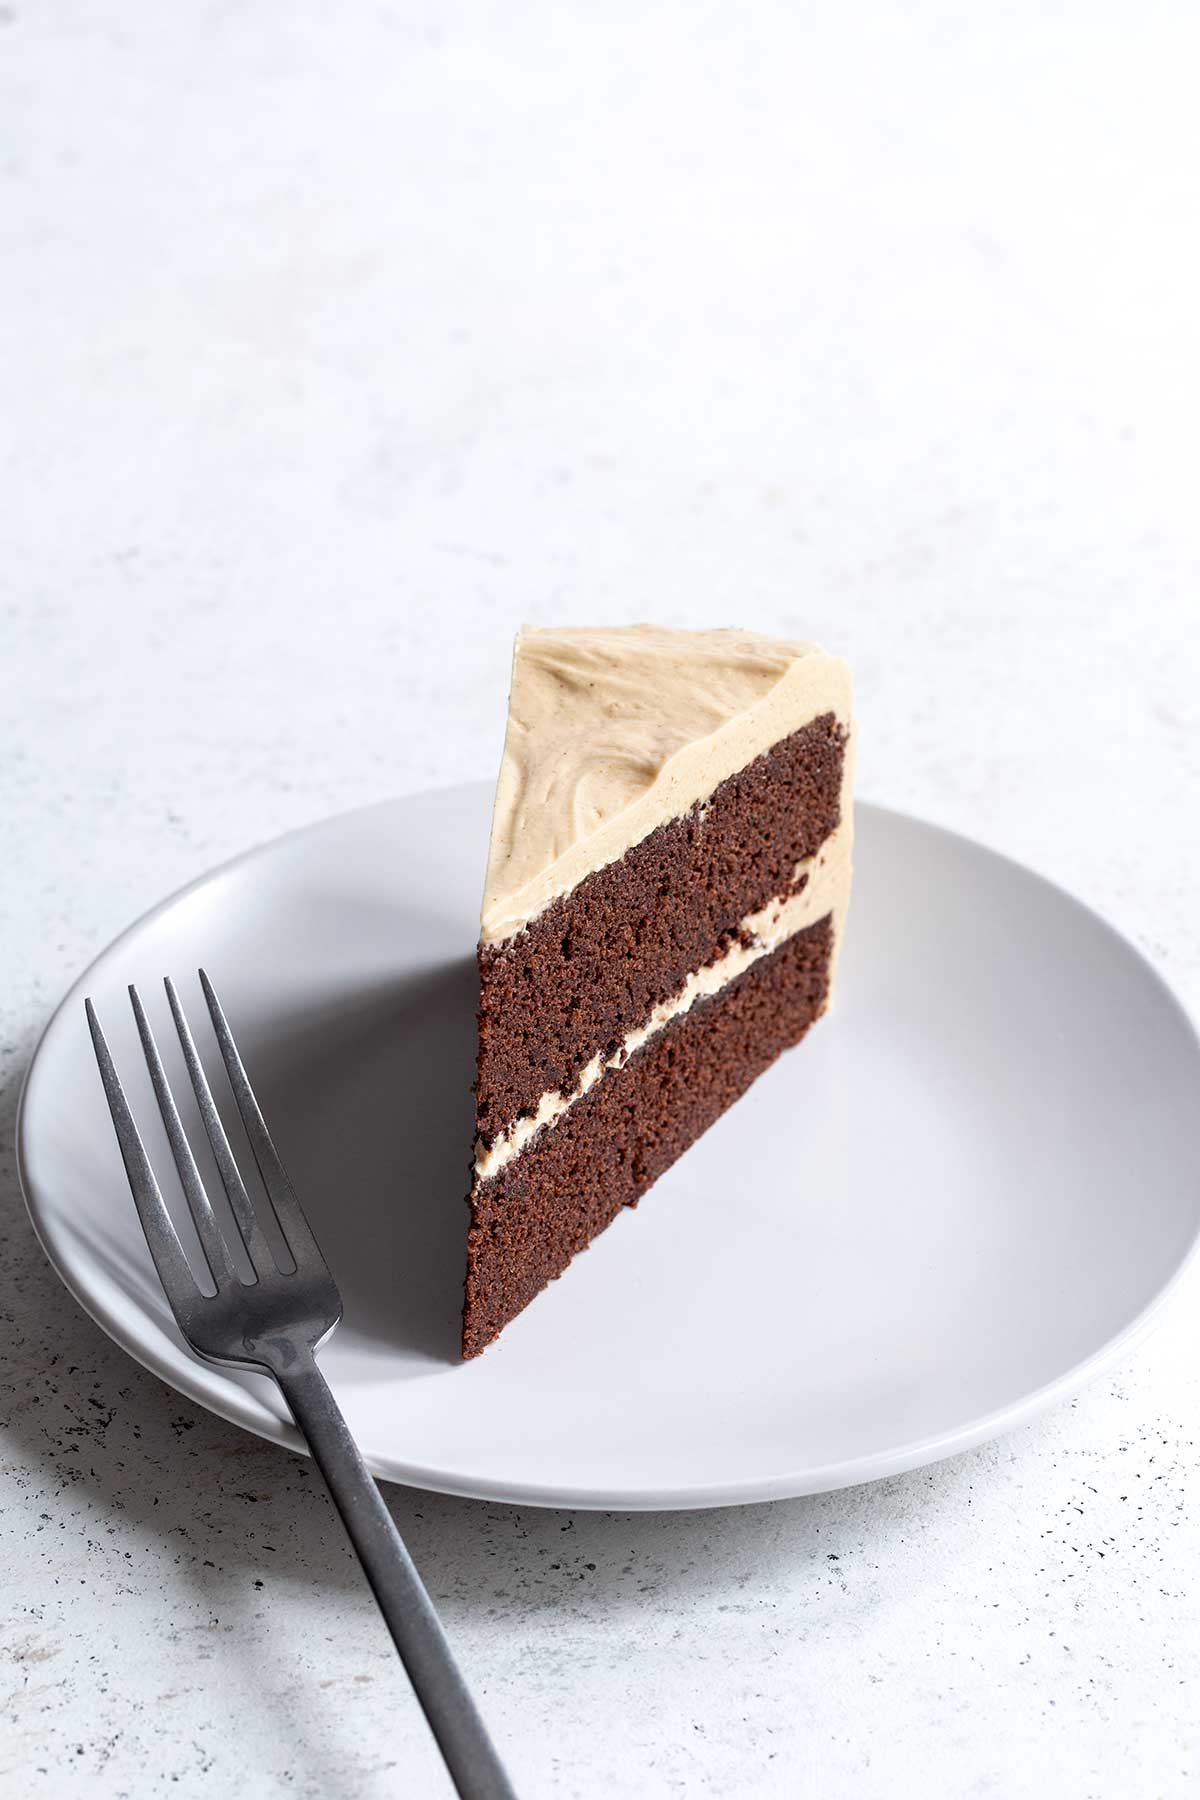 chocolate peanut butter cake slice with fork